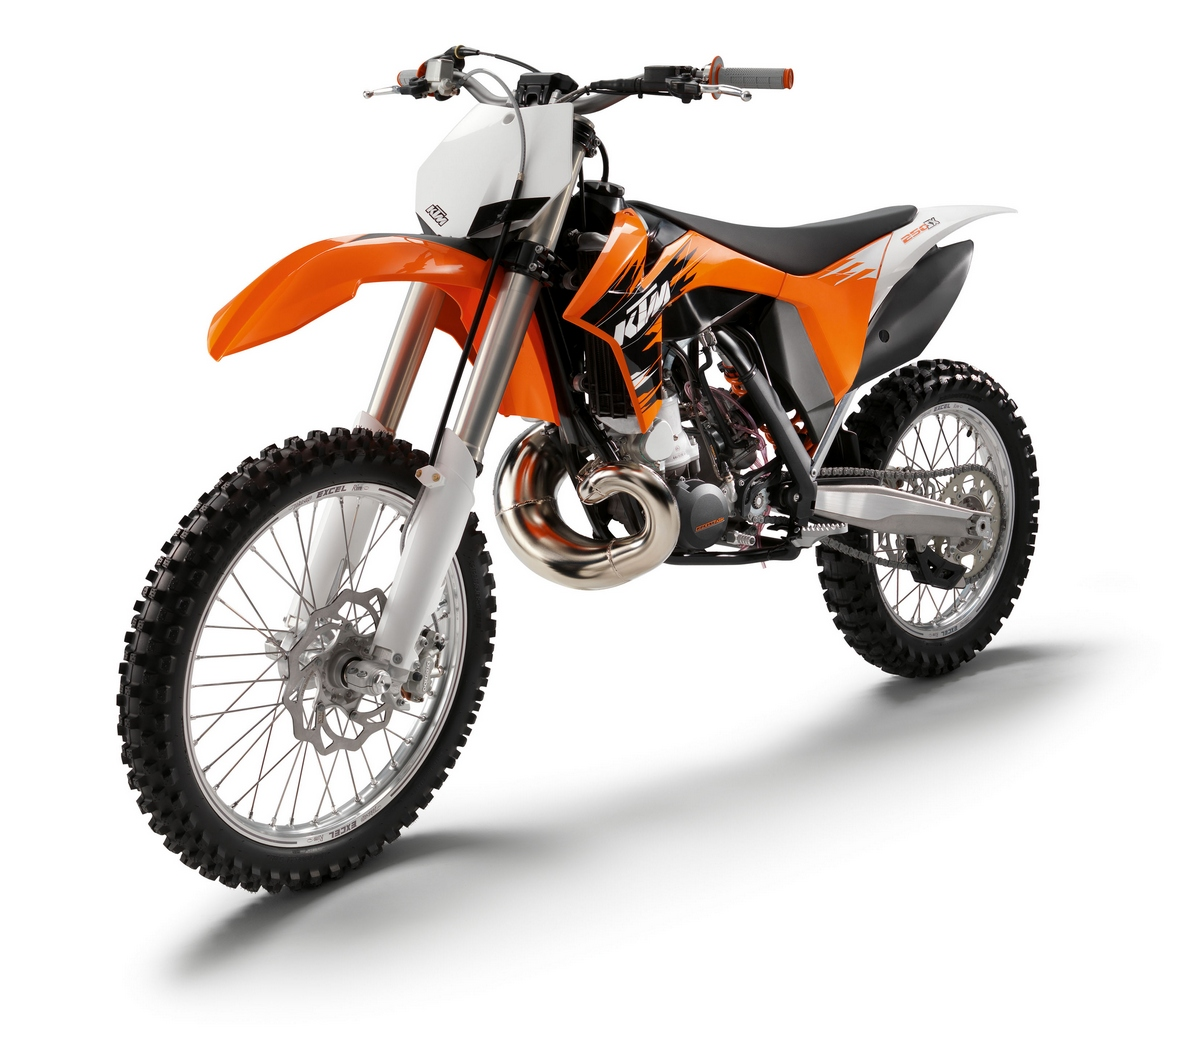 2011 ktm motocross. Black Bedroom Furniture Sets. Home Design Ideas